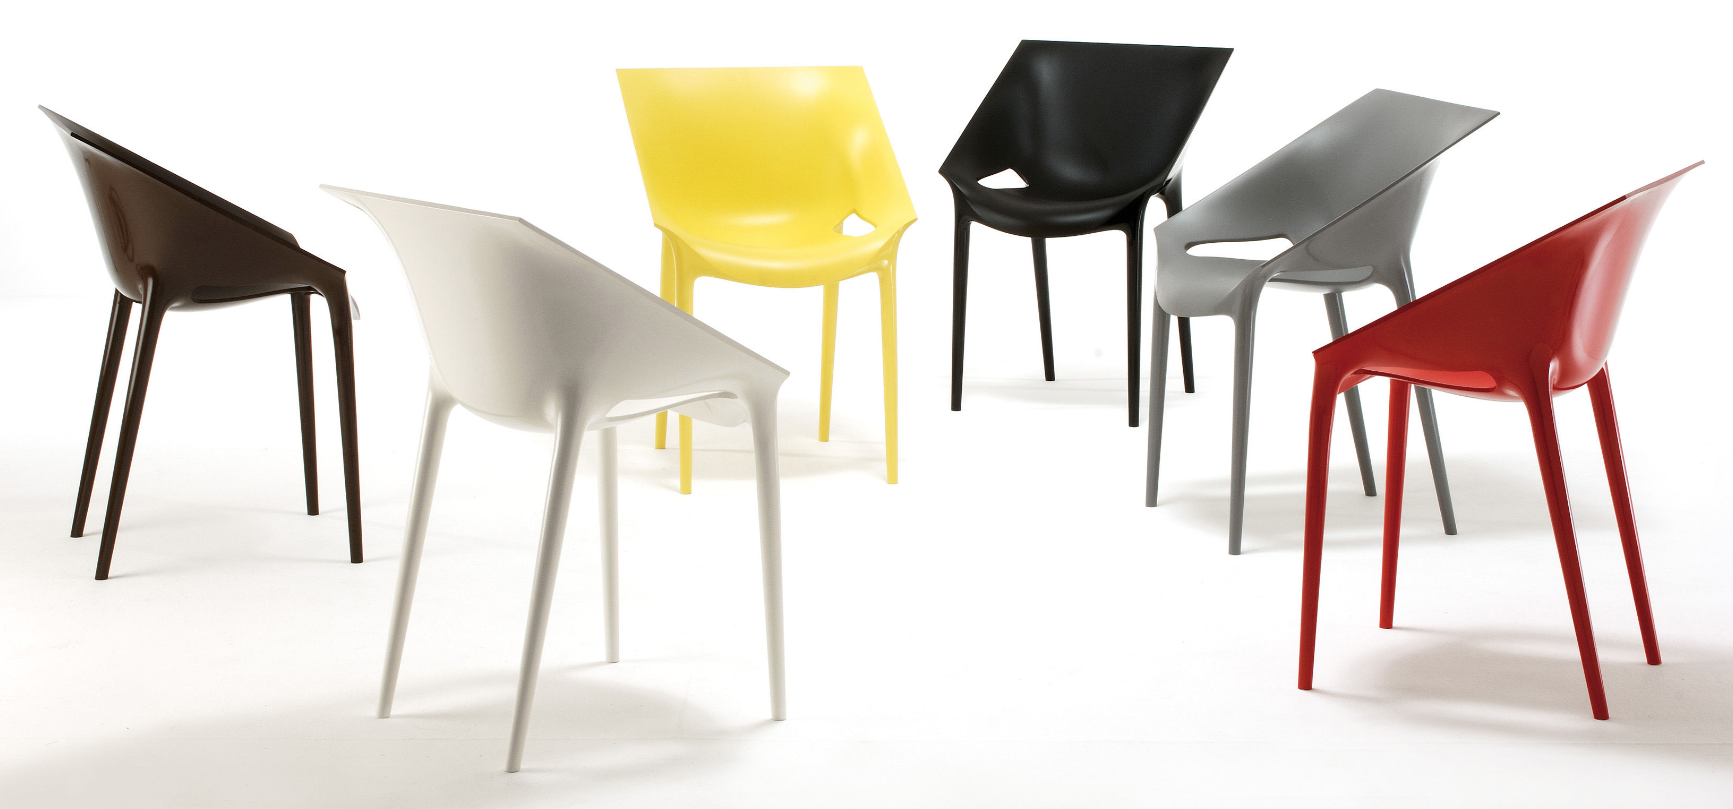 Dr Yes by Philippe Starck for Kartell